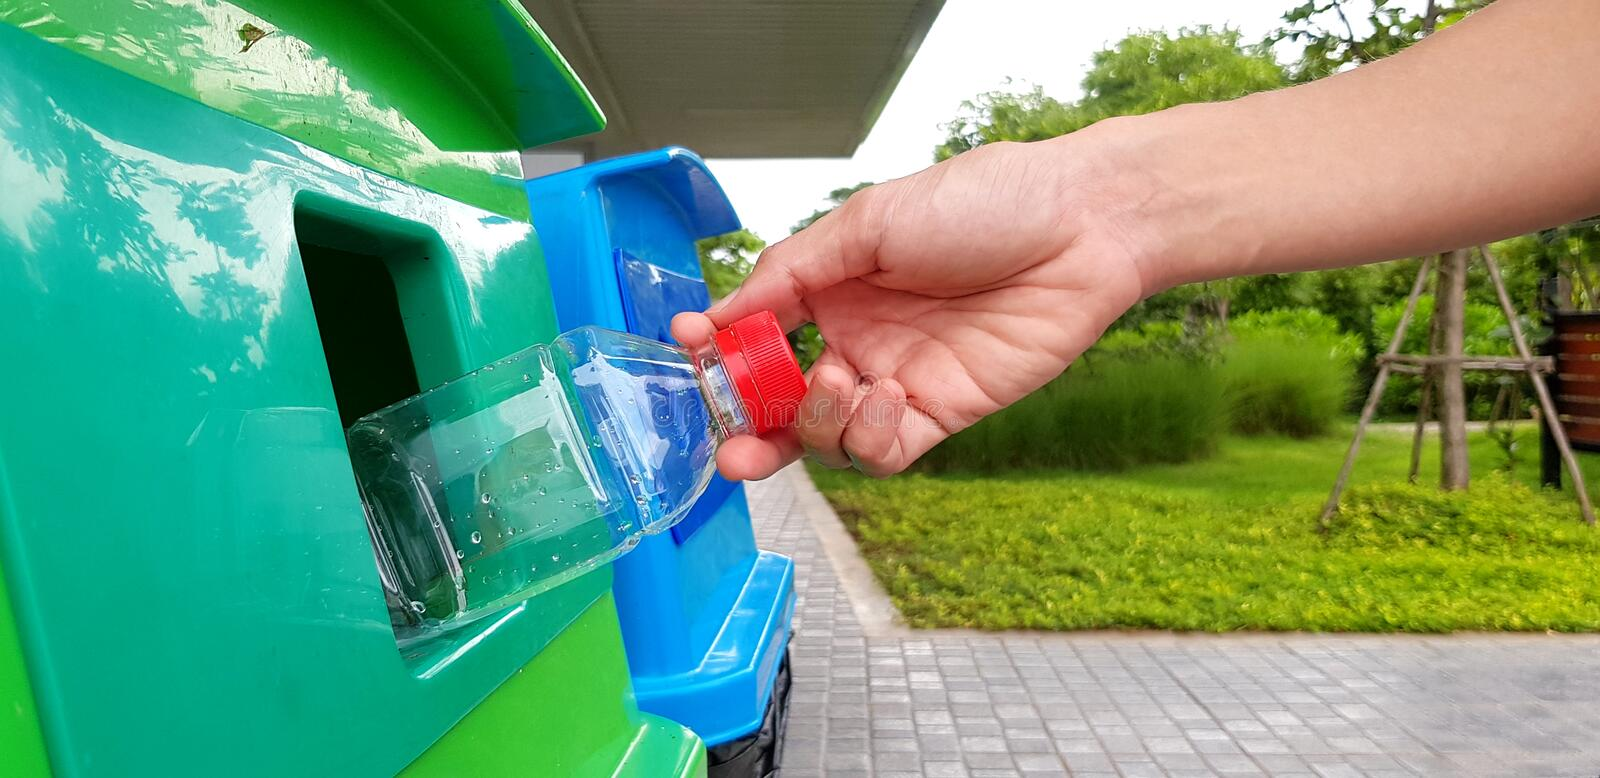 Close up woman`s hand holding and dumping plastic bottle of water into green recycle bin, trashcan or trash. With street and green garden background - Cleaning royalty free stock photo